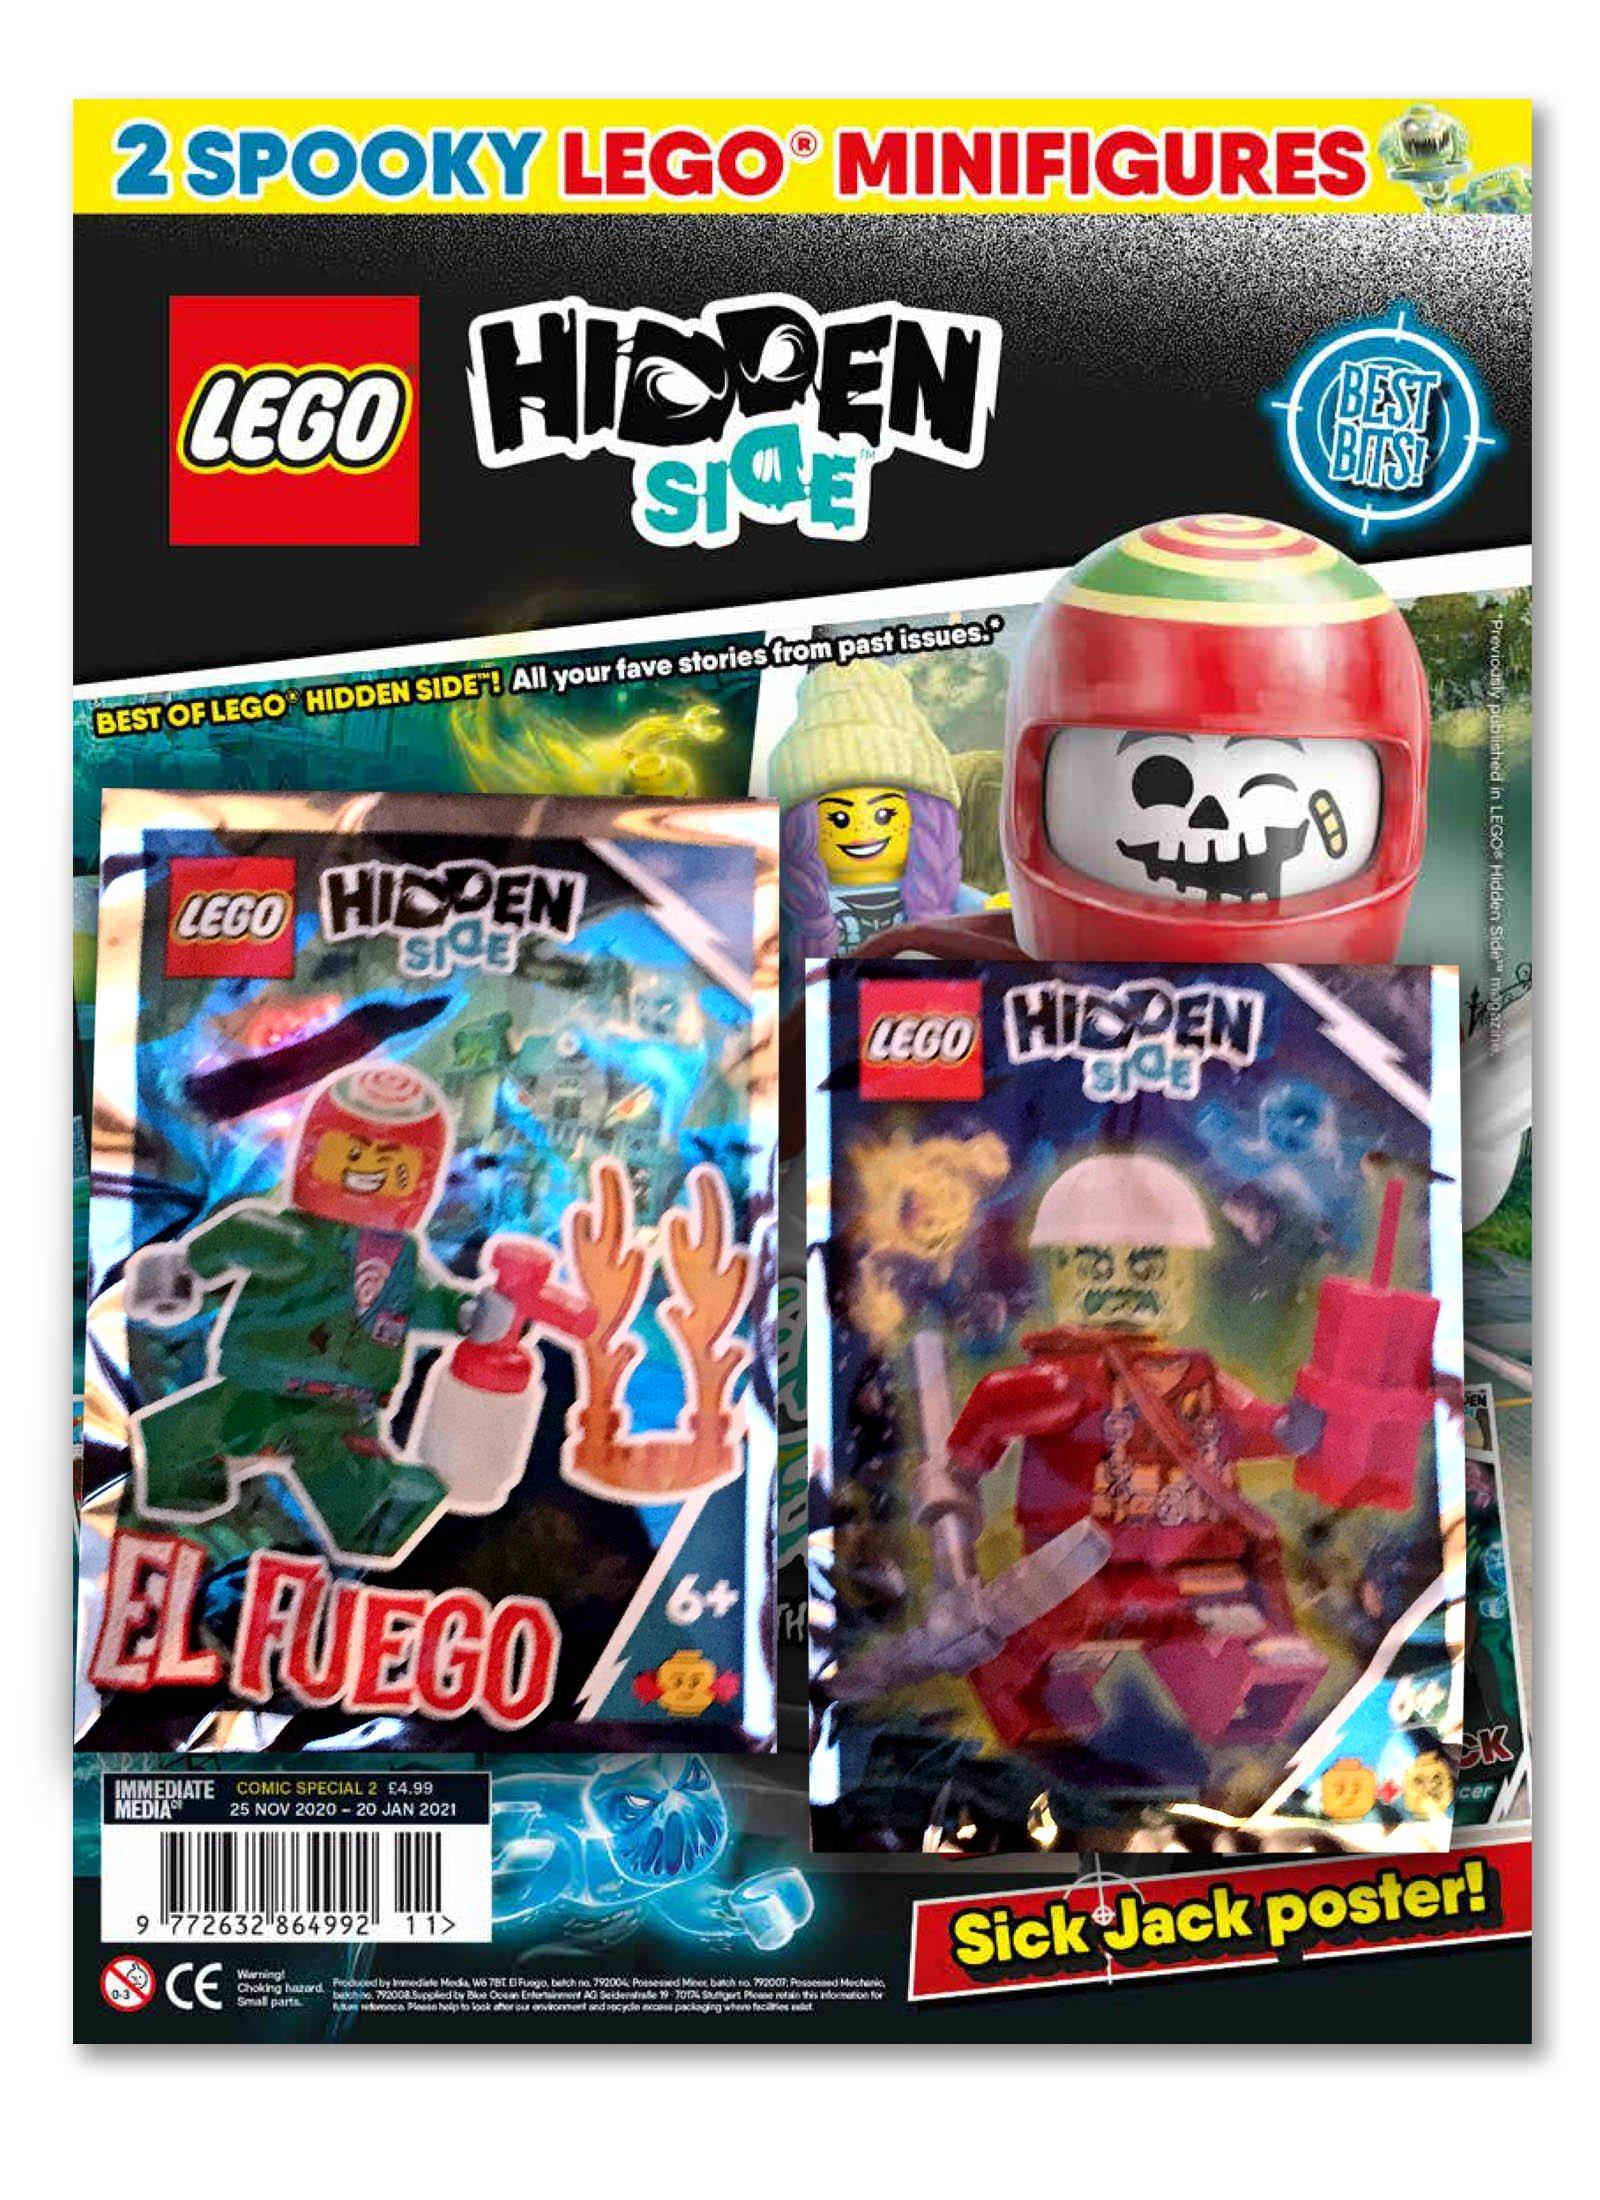 LEGO Hidden Side Comic Special 2 Magazine 5 Minute Fun Shop